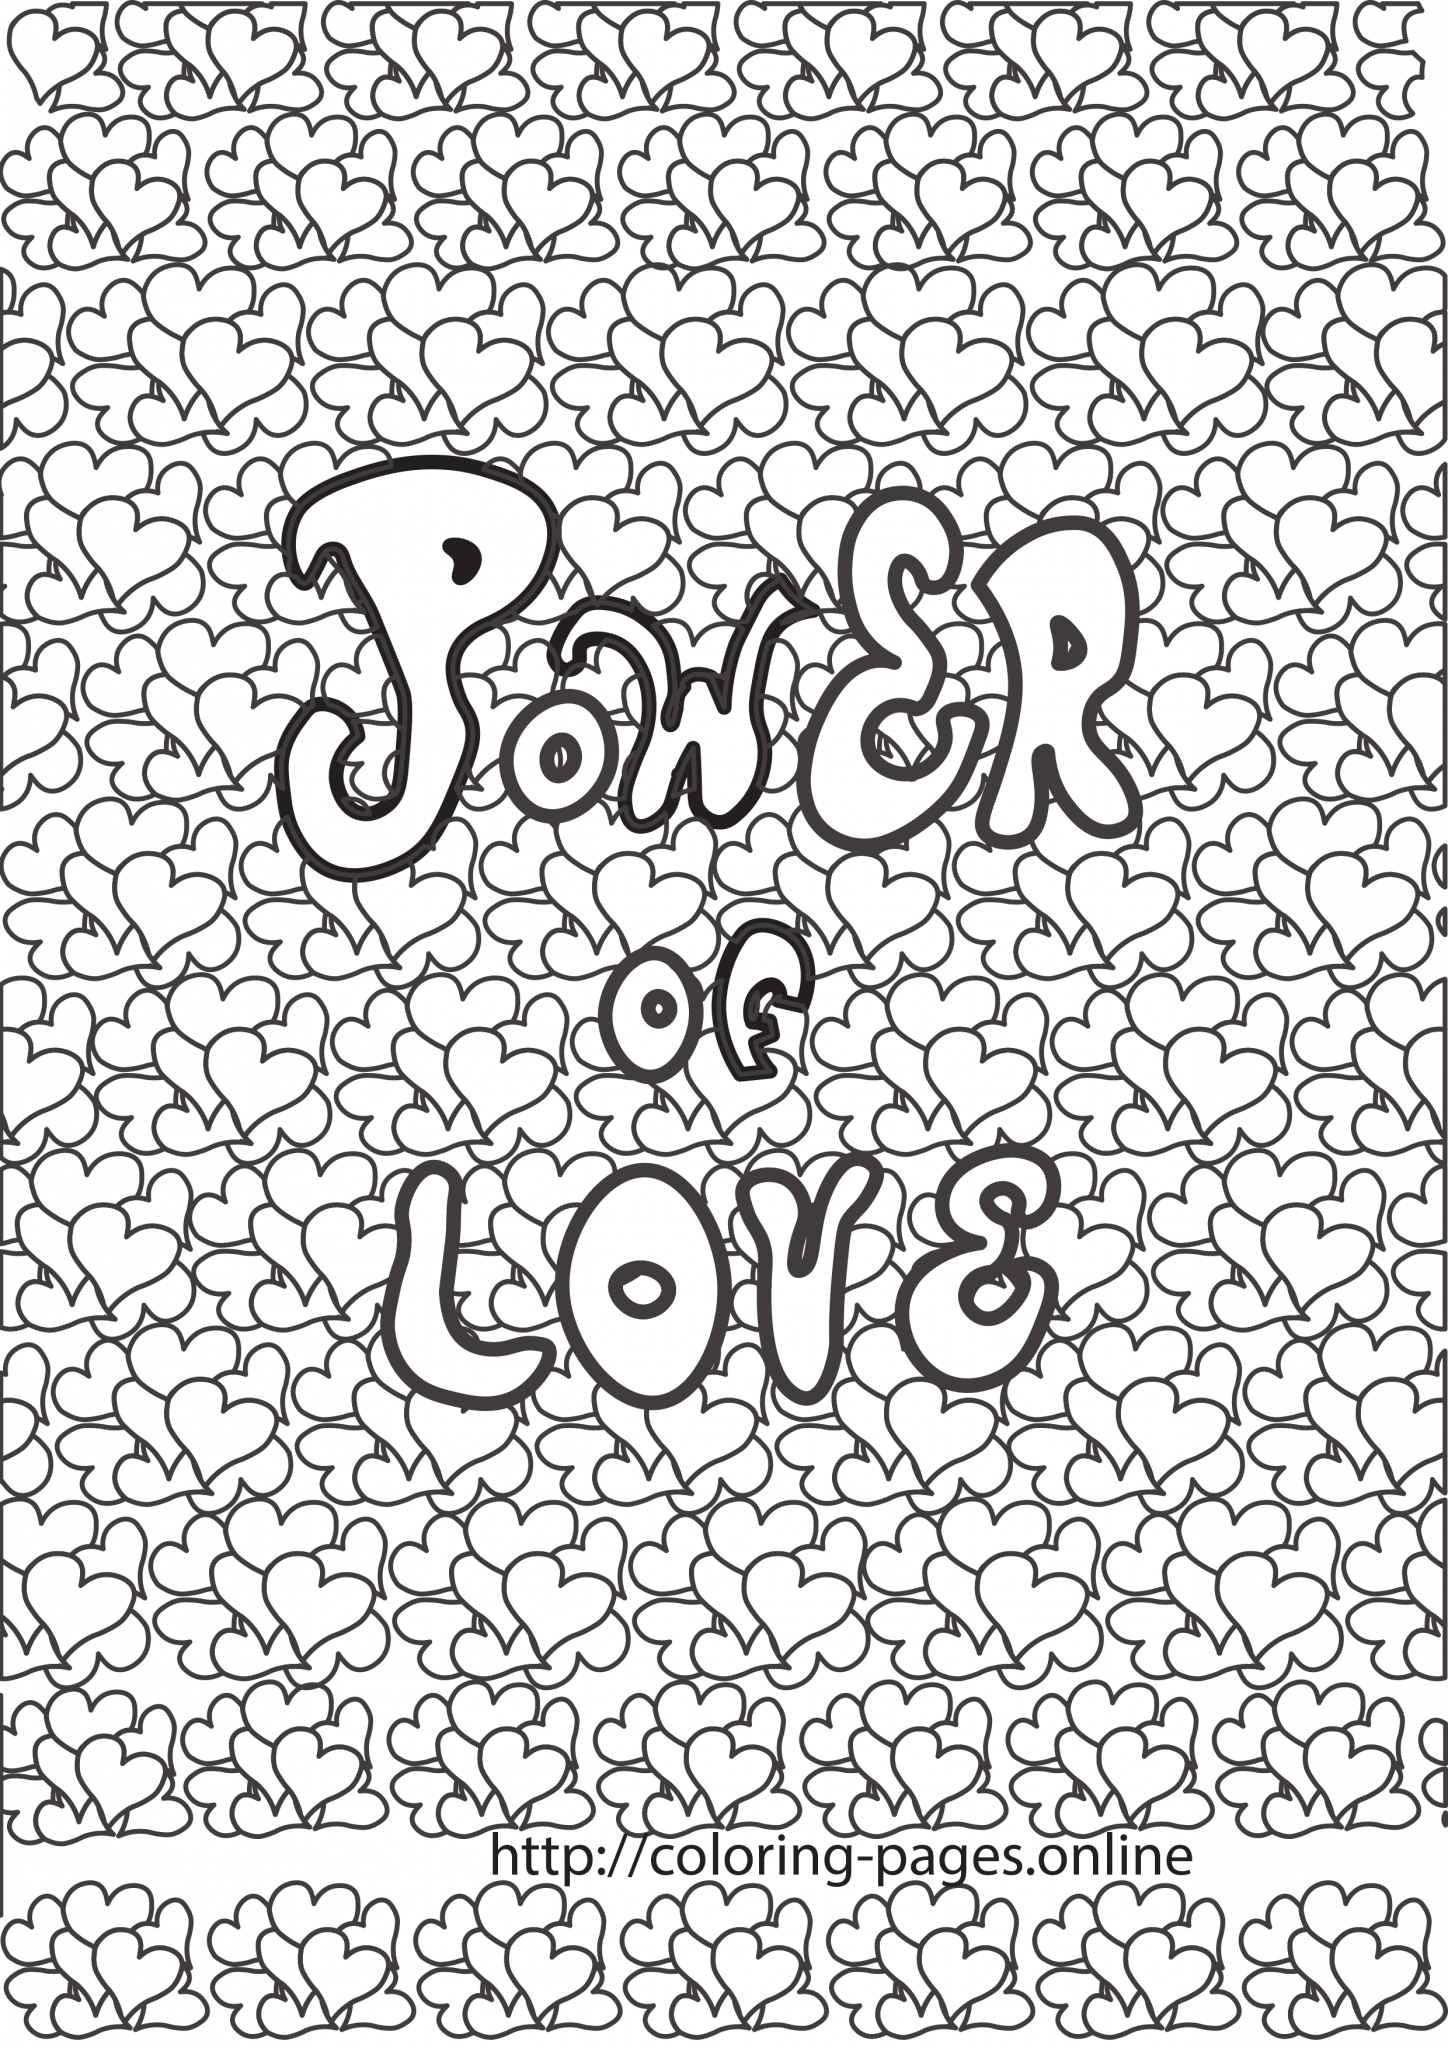 Power of love coloring page